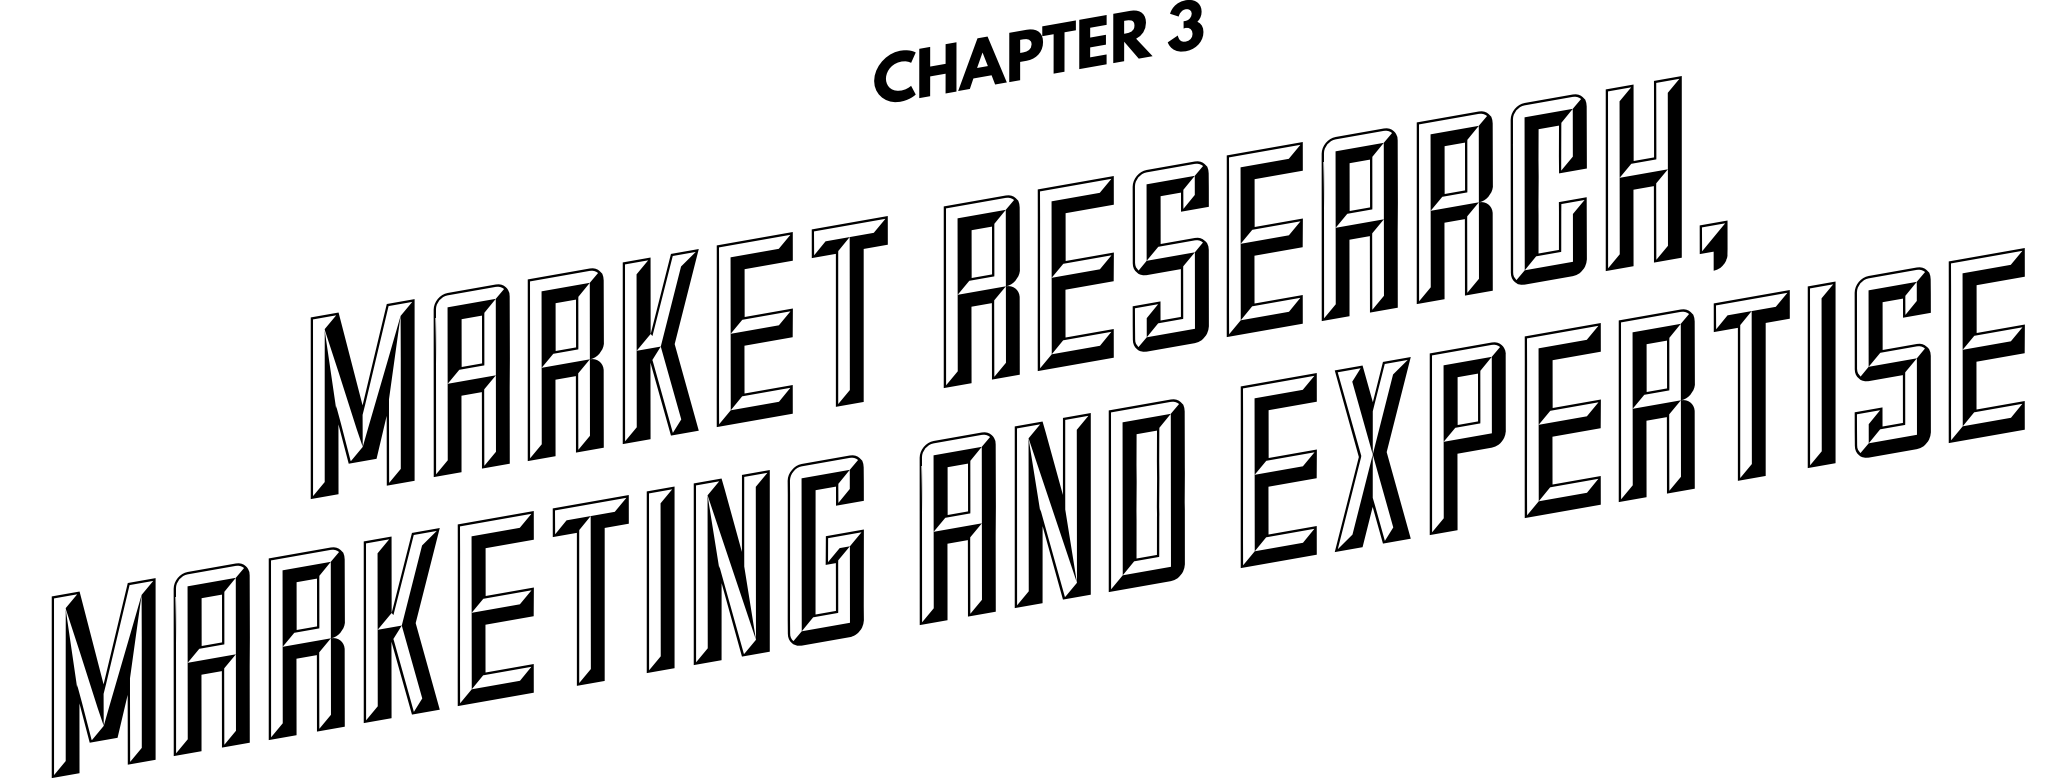 Chapter 3: Market research, marketing and expertise